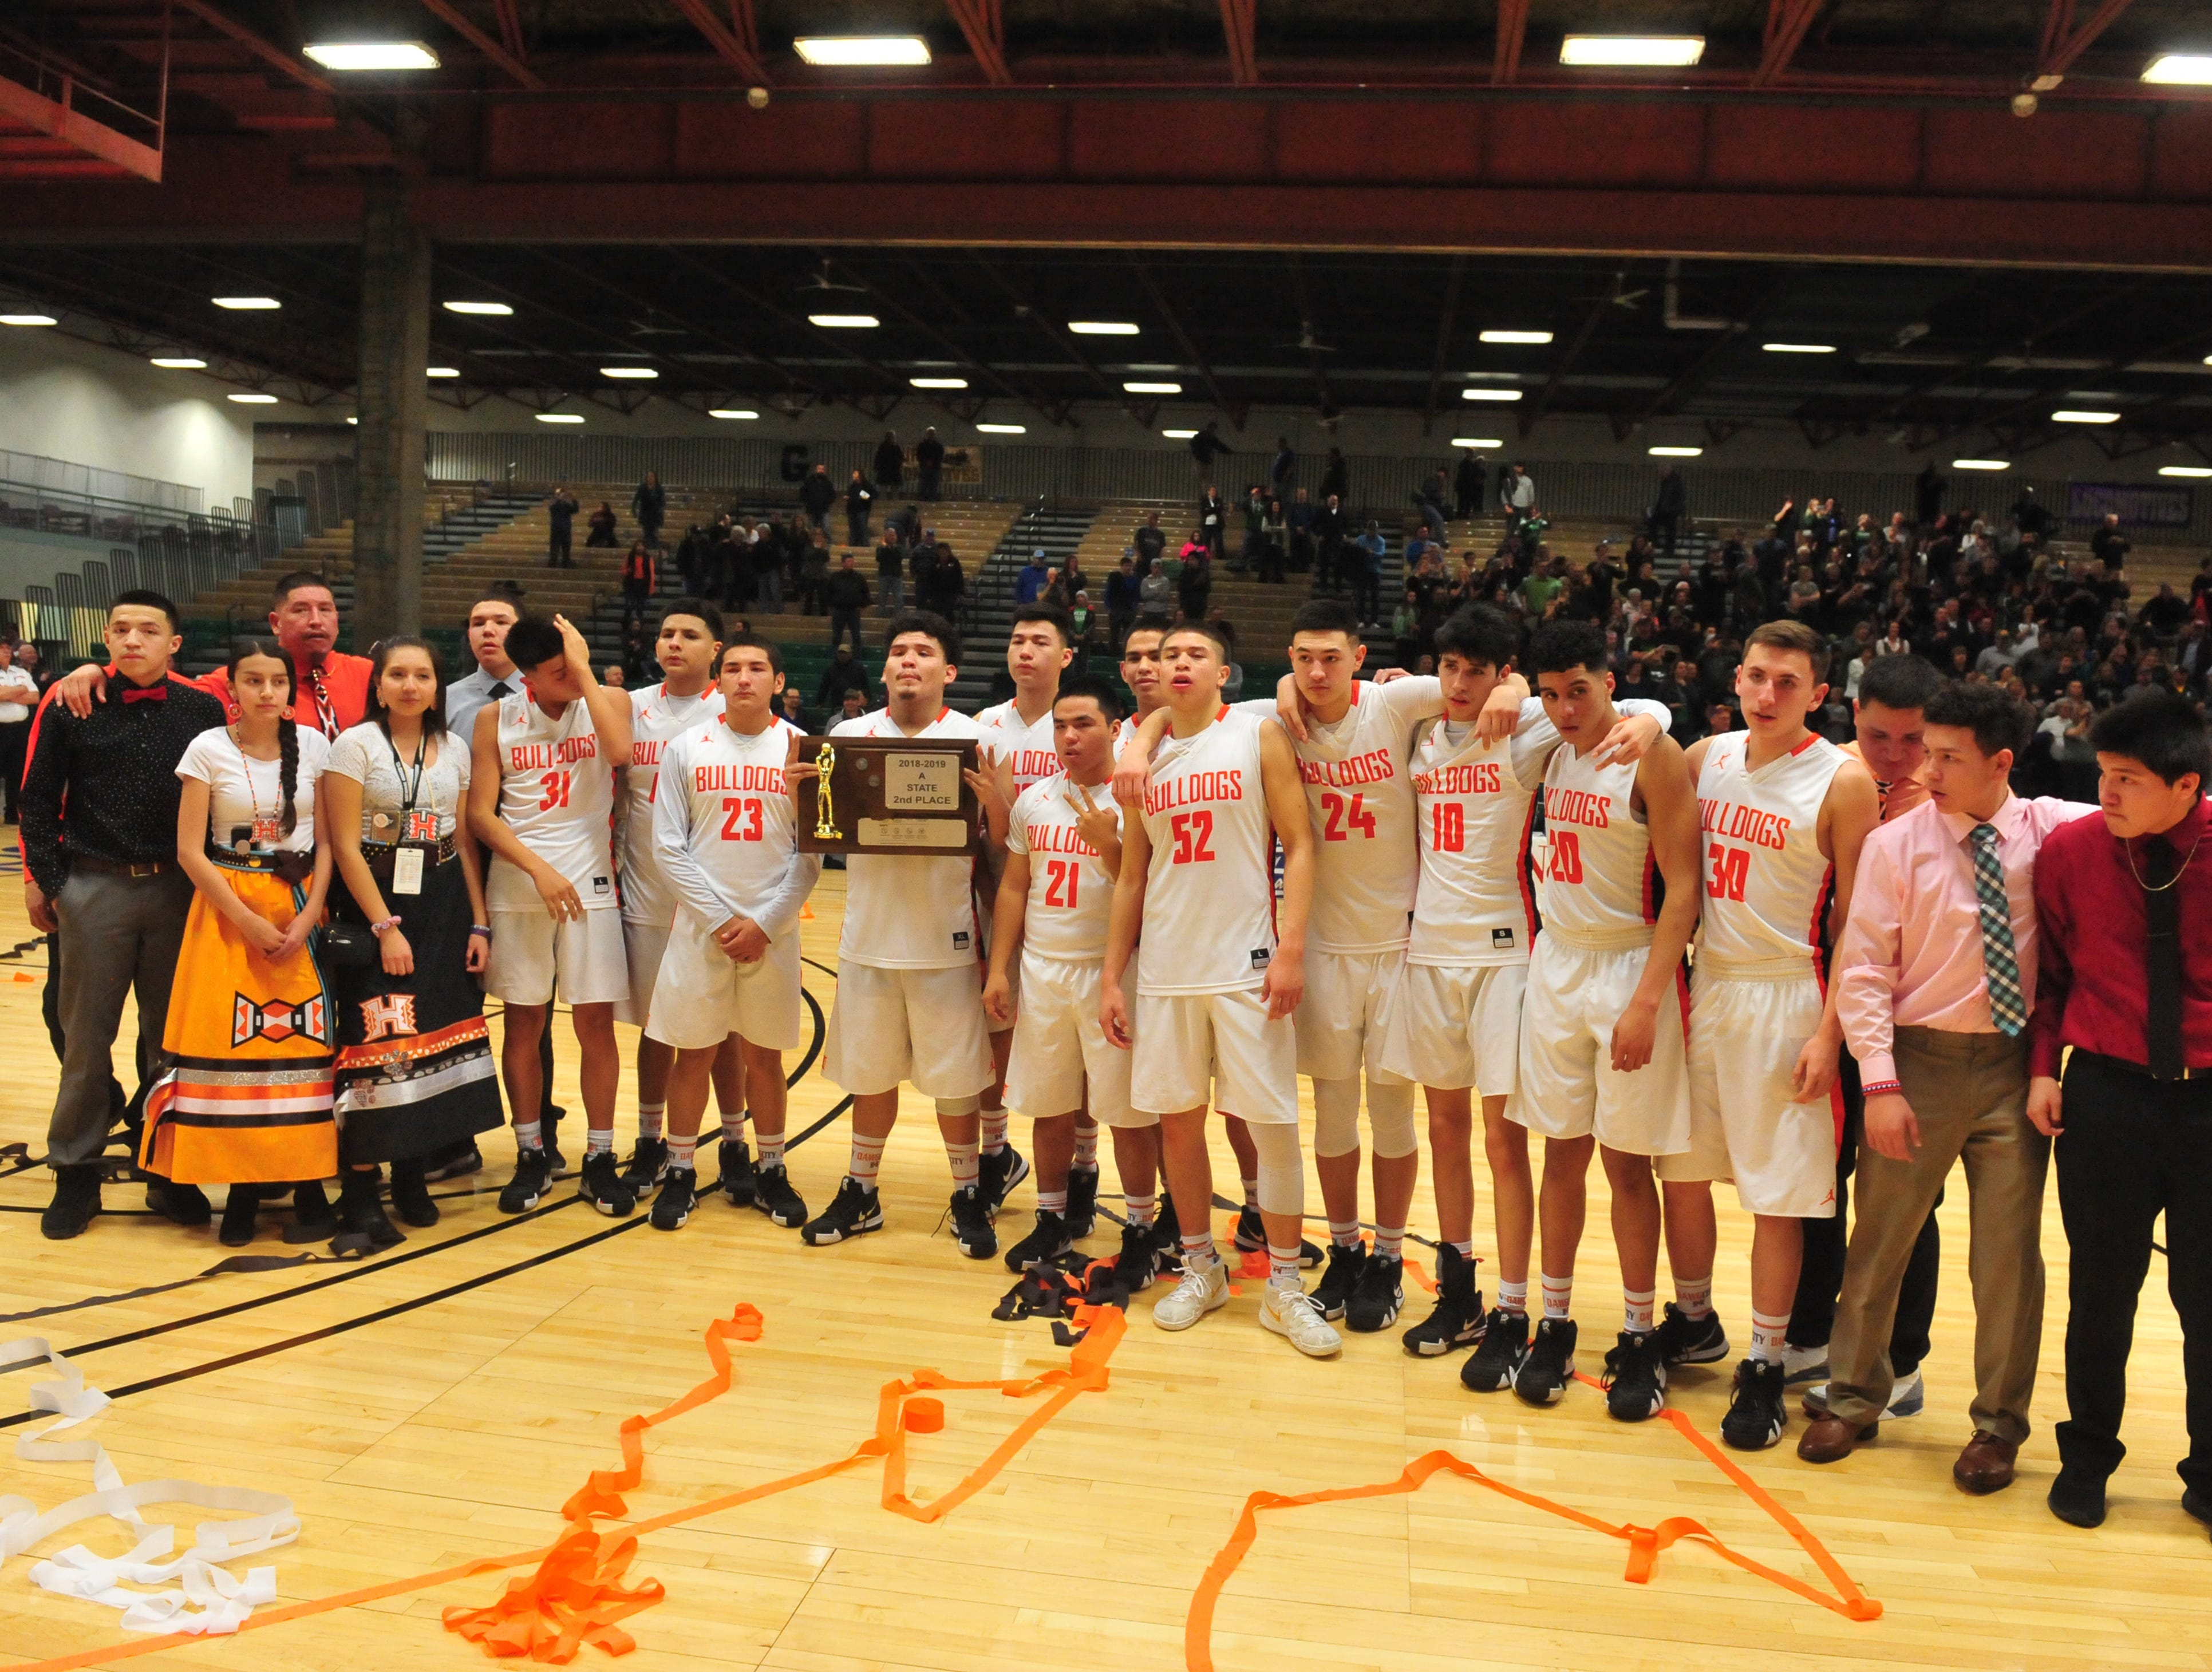 Hardin and Billings Central boys play in the title game of the State Class A Basketball Tournament in the Four Seasons Arena, Saturday.